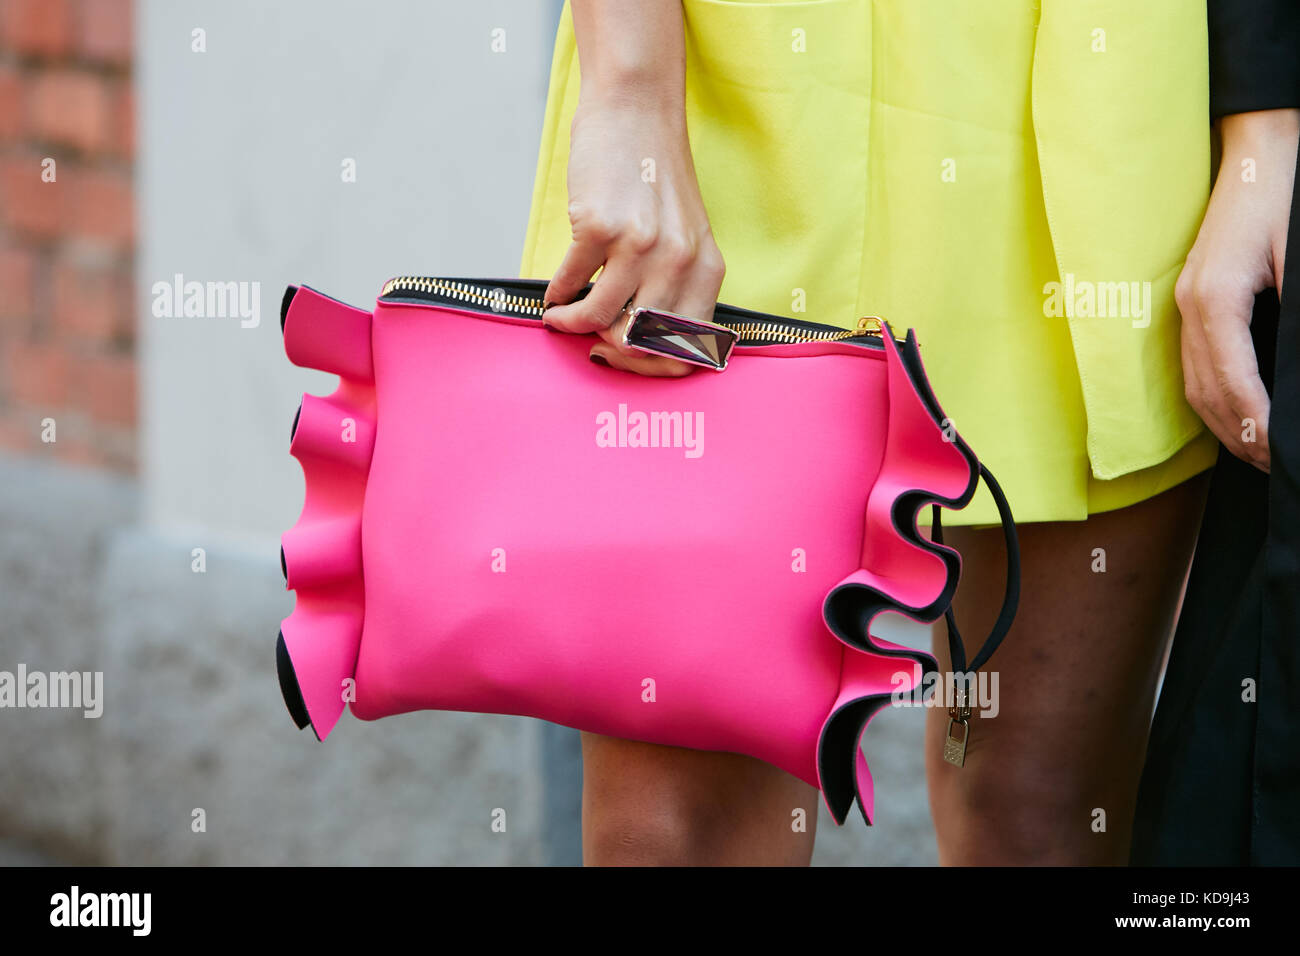 MILAN - SEPTEMBER 21  Woman with vibrant pink leather bag a49aa5df017db